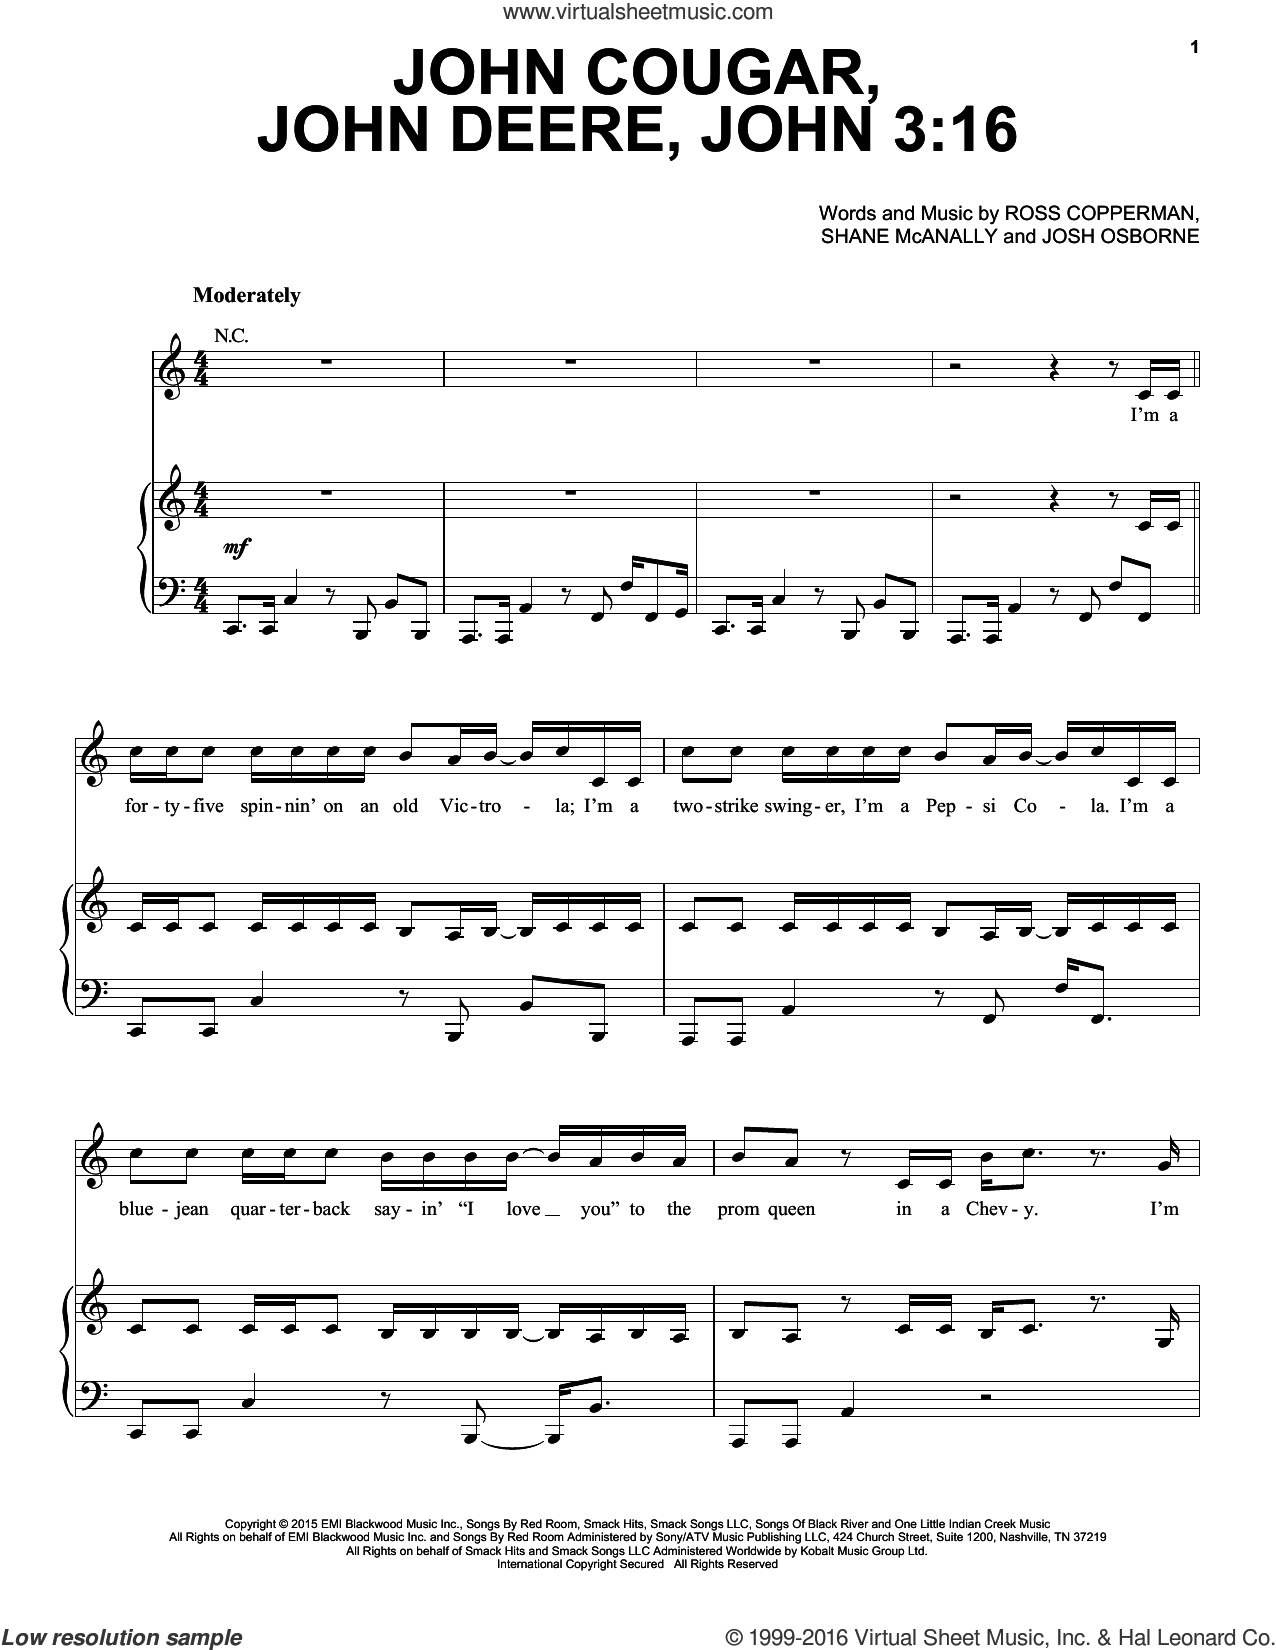 John Cougar, John Deere, John 3:16 sheet music for voice, piano or guitar by Keith Urban, Josh Osborne, Ross Copperman and Shane McAnally, intermediate skill level